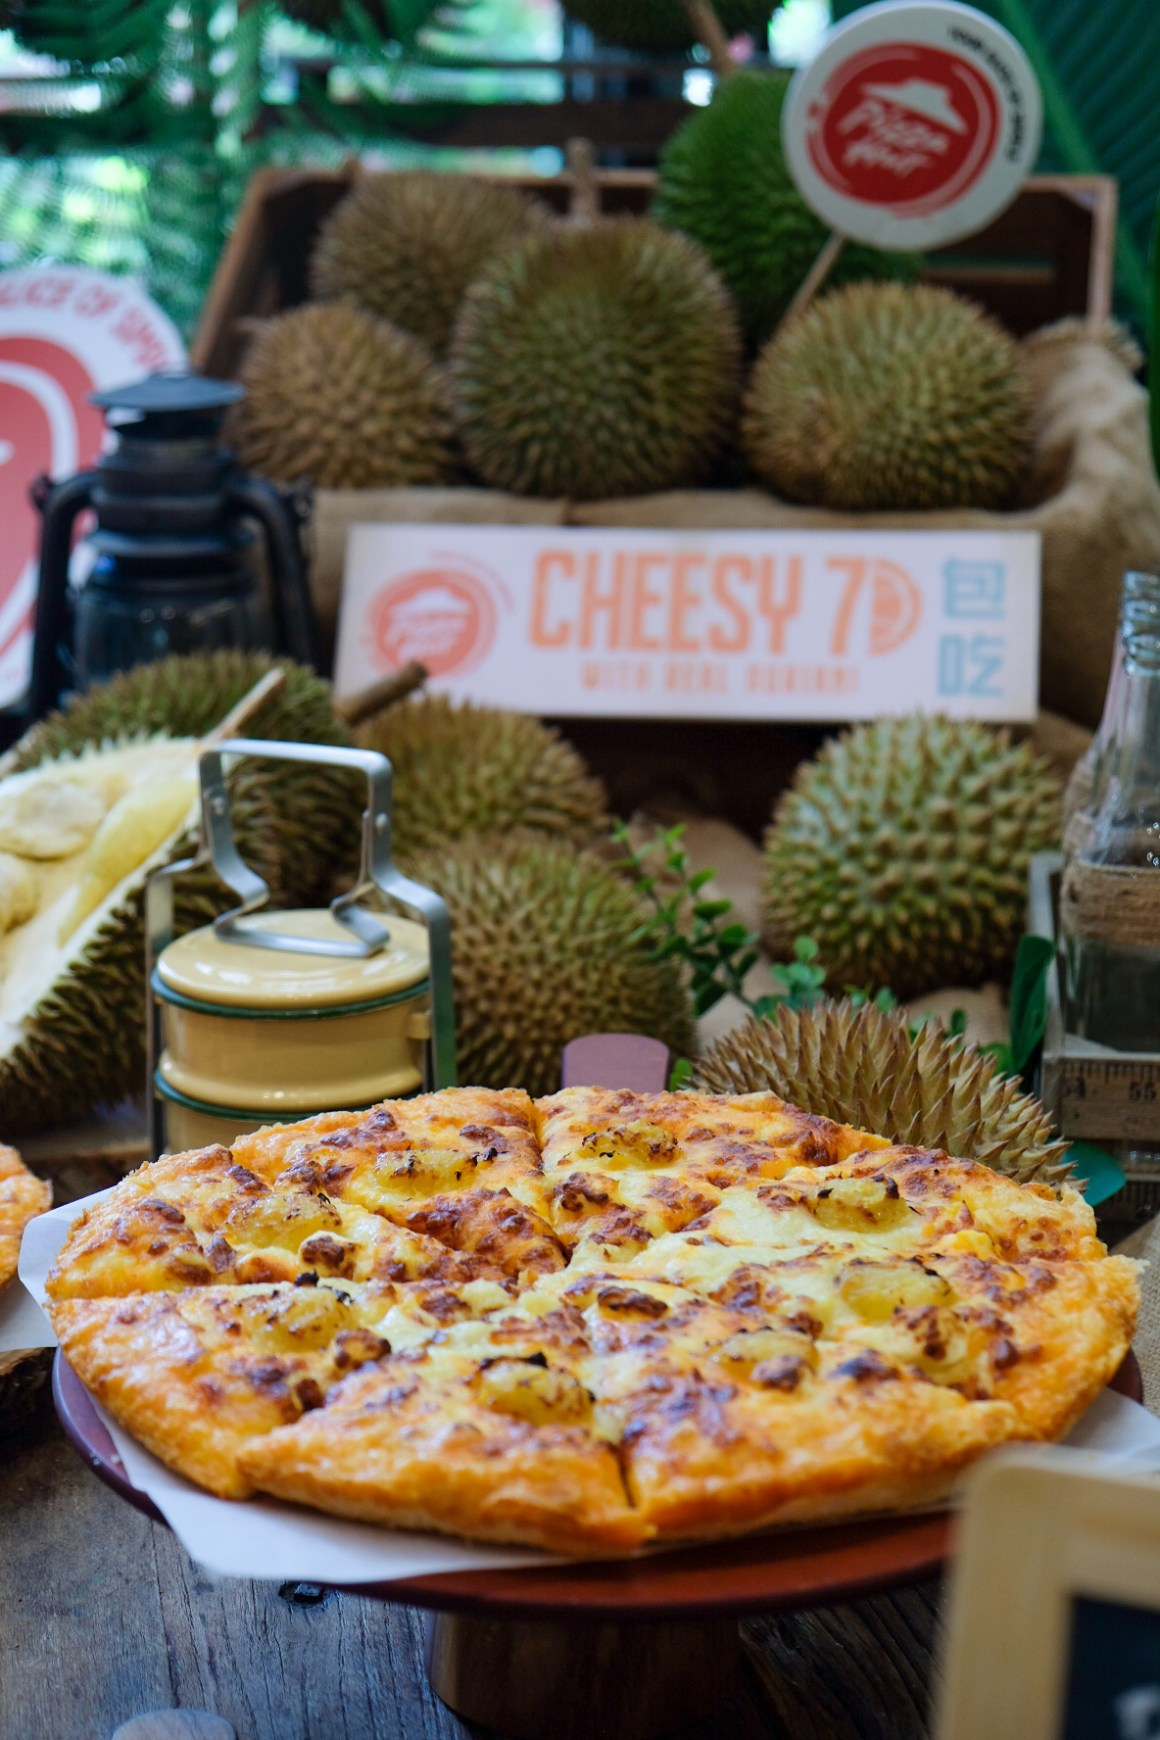 Cheesy 7 Durian Pizza, Pizza Hut New Flavour - Cheesy 7 Durian Pizza